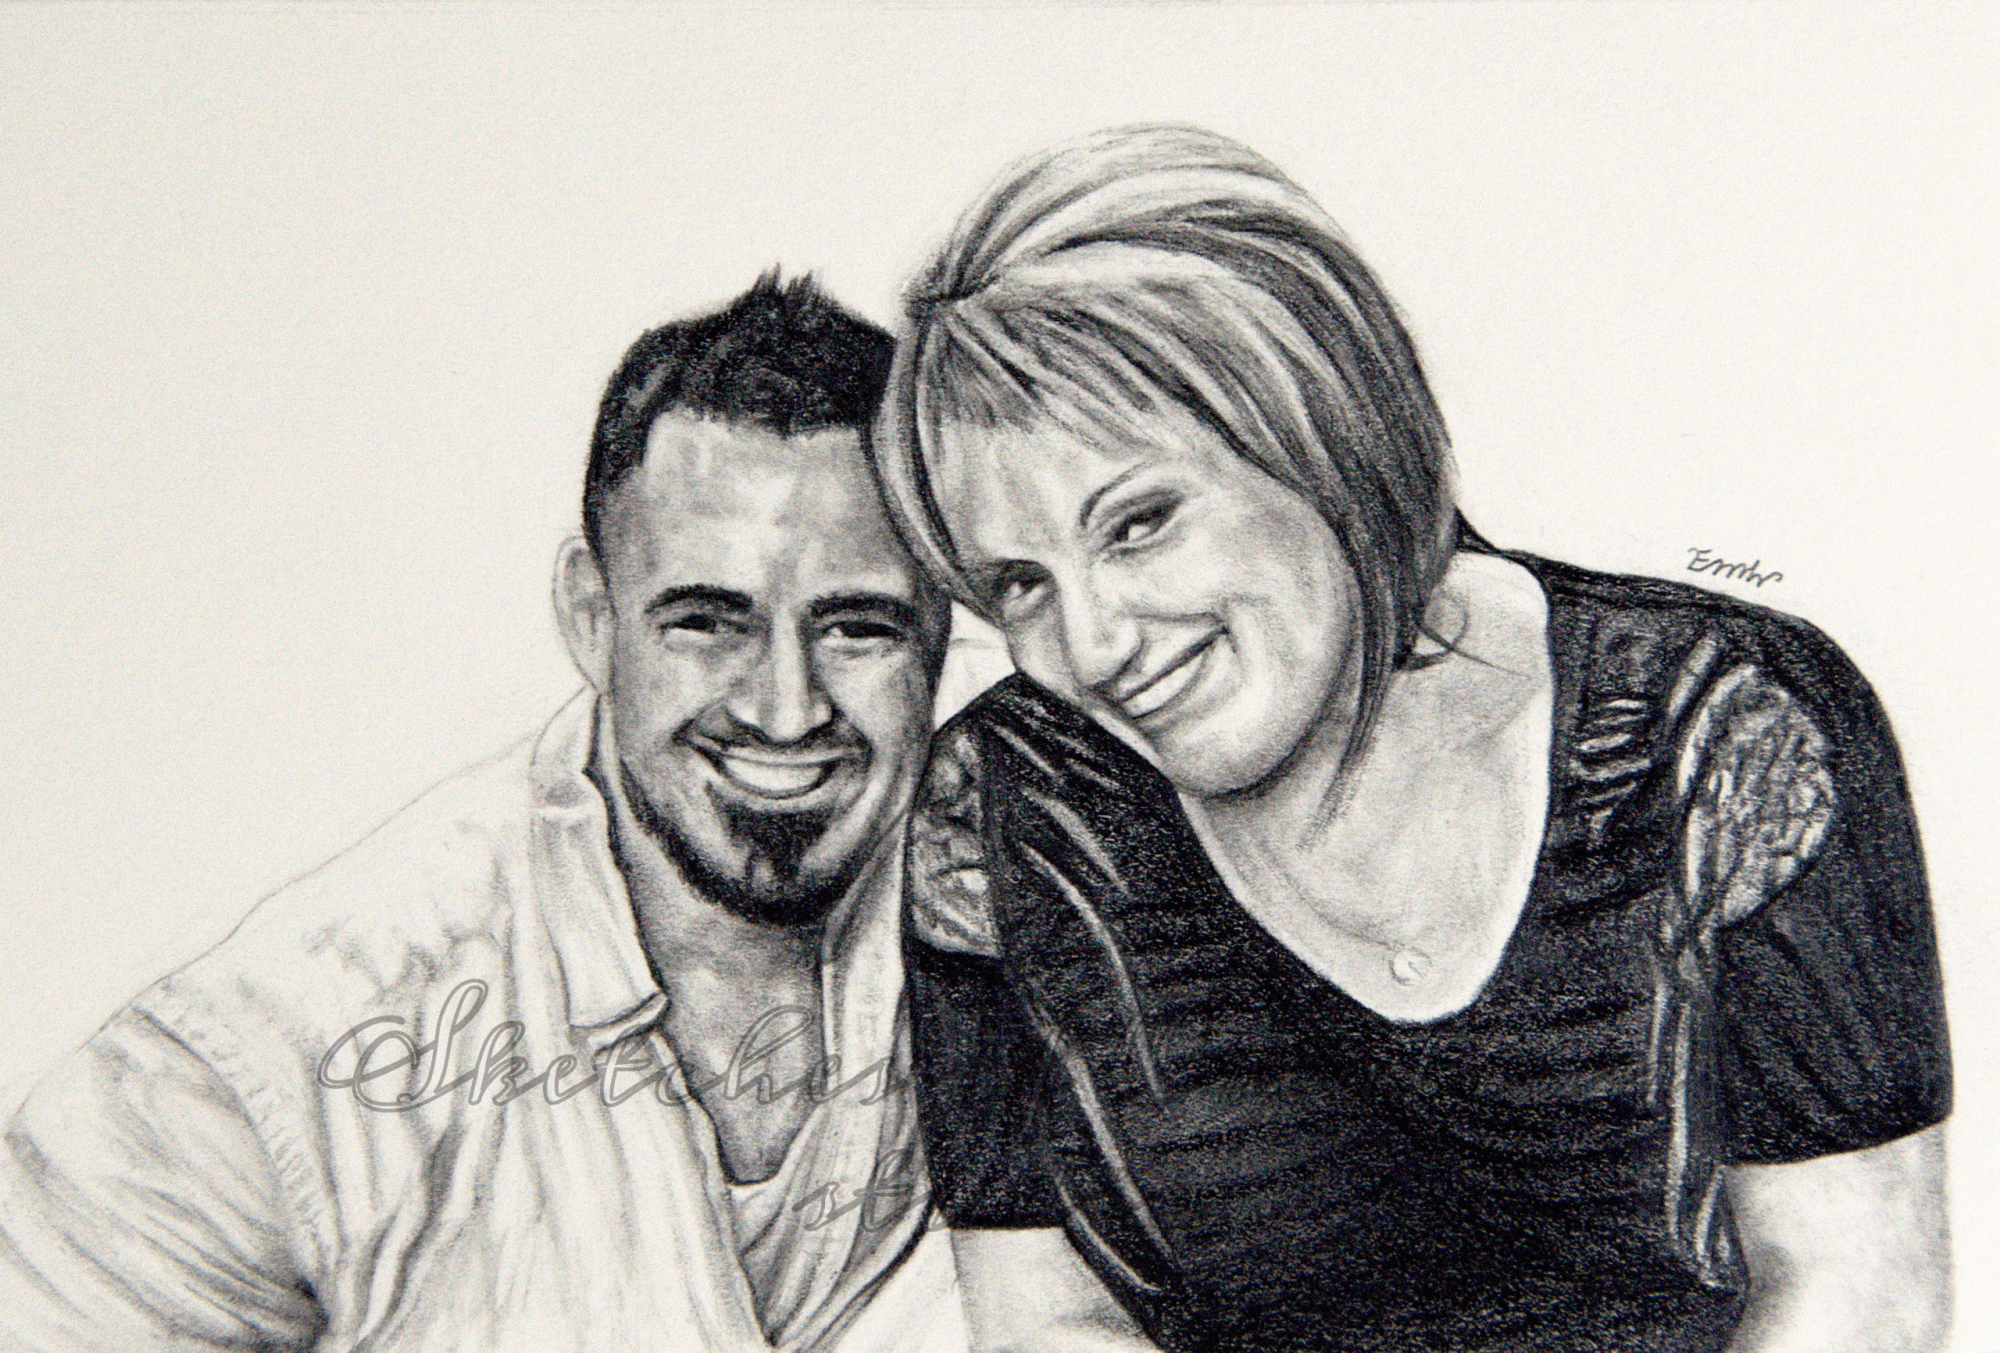 'Eternal Bond' a drawing of a mother and son. 4x6 inches. Completed January 2020